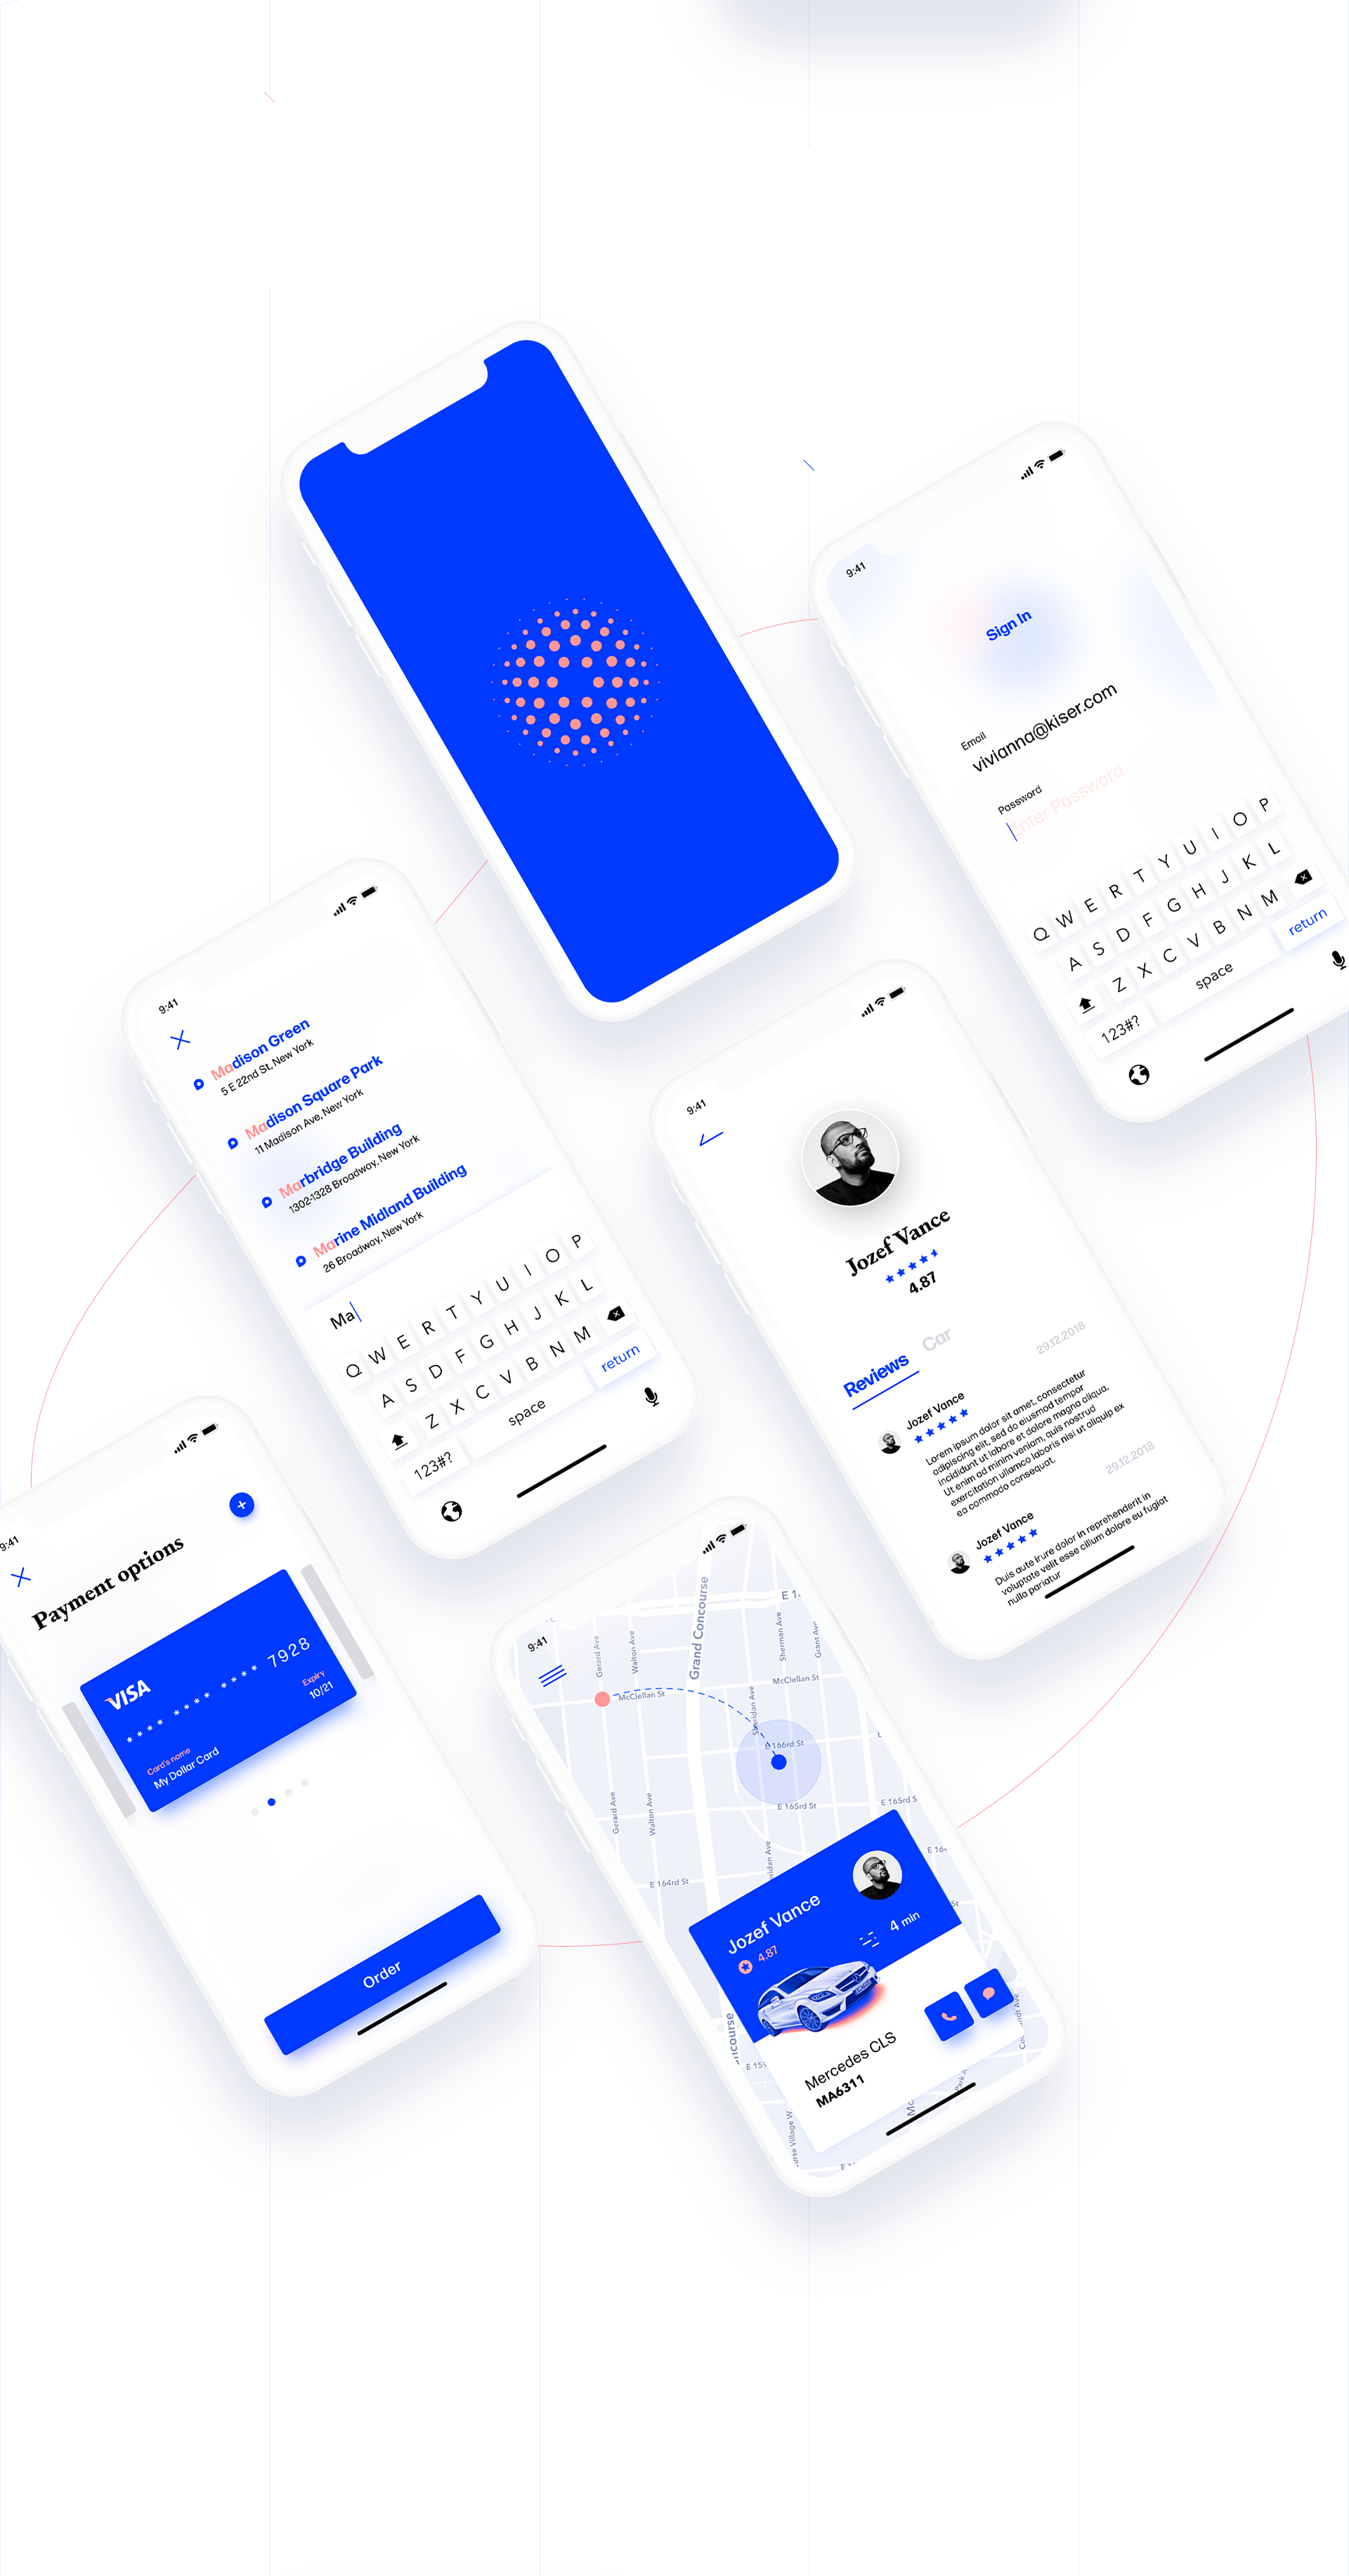 Mobile App Design NYC Taxi App Concept using Adobe XD(이미지